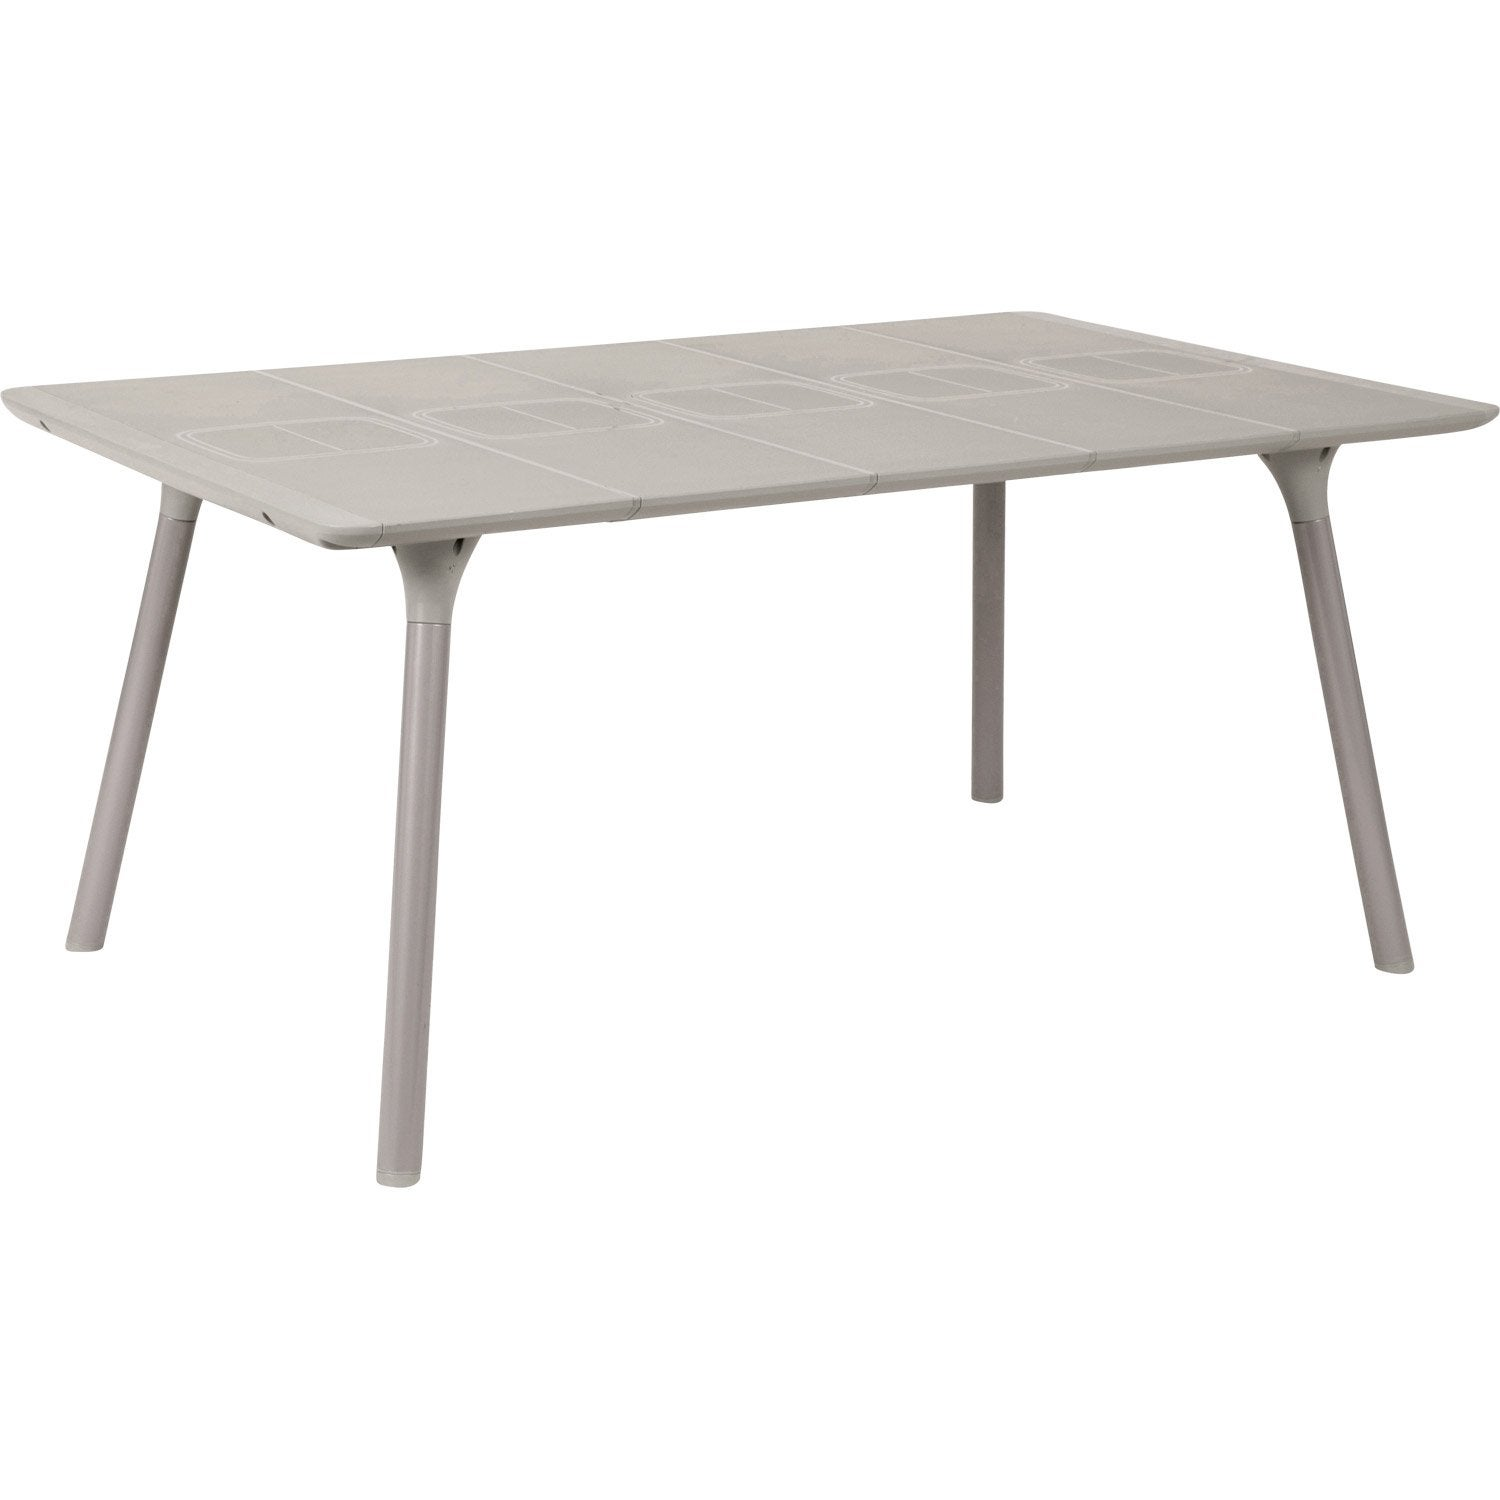 Table de jardin naterial playmood rectangulaire lin 6 personnes leroy merlin - Leroy merlin table jardin ...